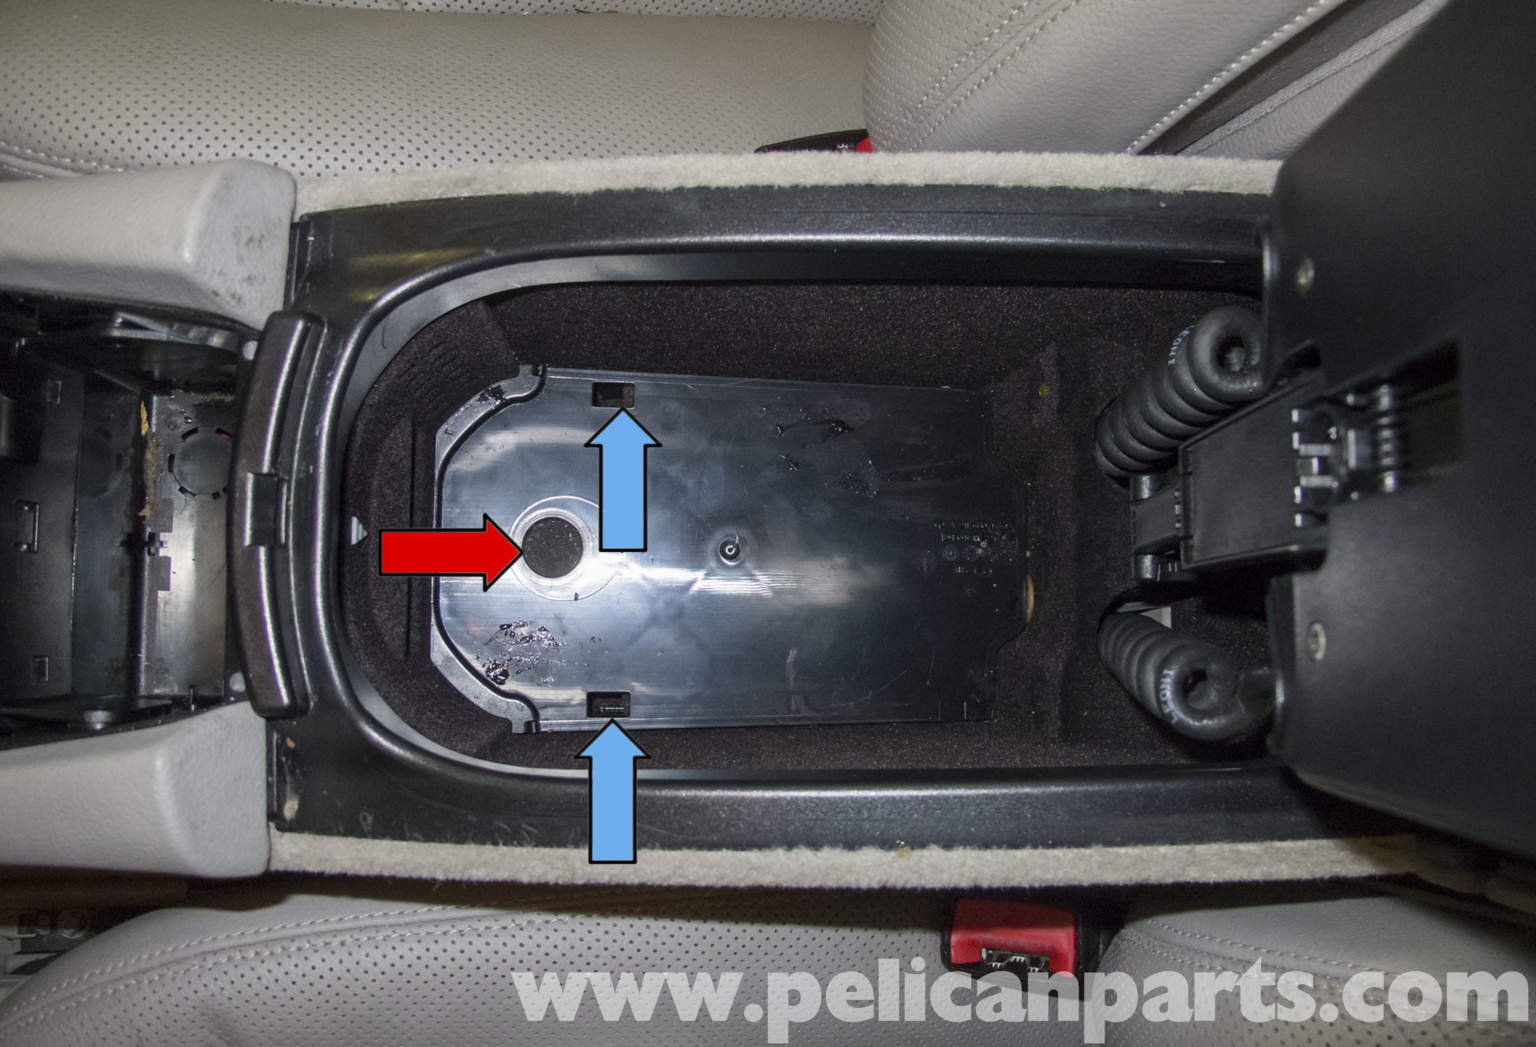 Pelican technical article mercedes benz w211 center for Interior parts for mercedes benz